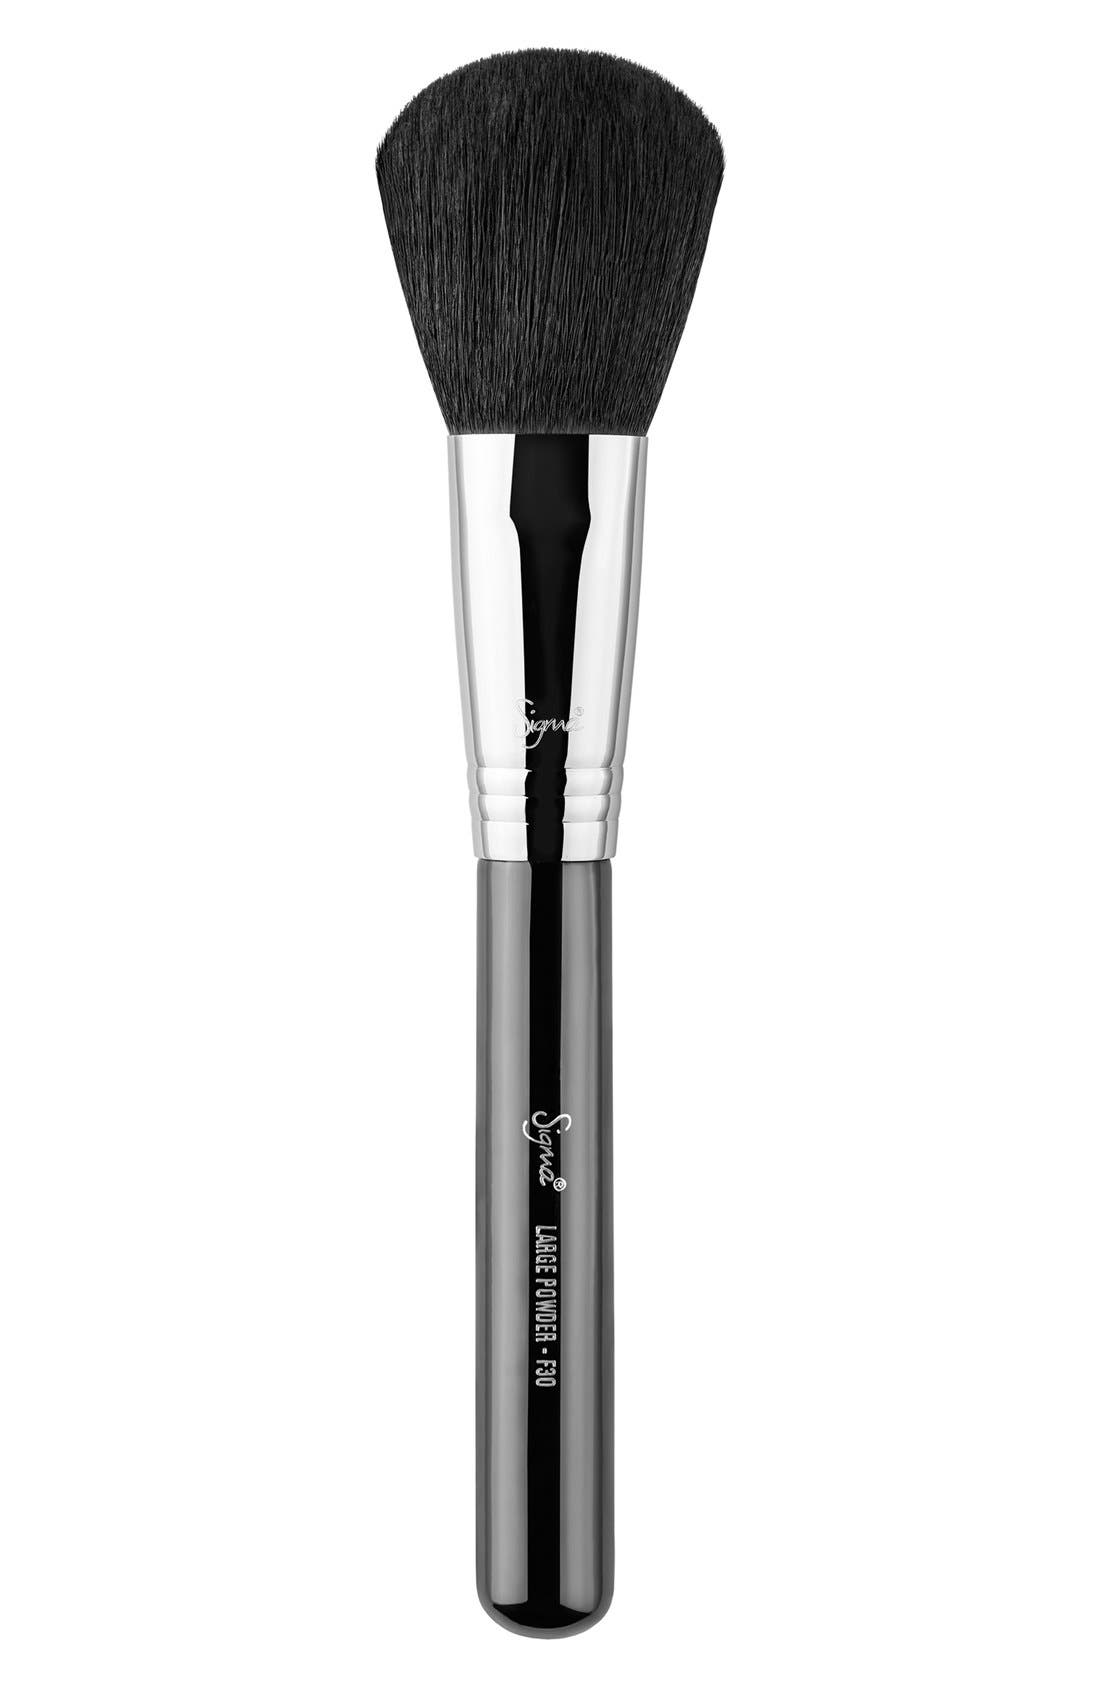 F30 Large Powder Brush,                         Main,                         color, NO COLOR